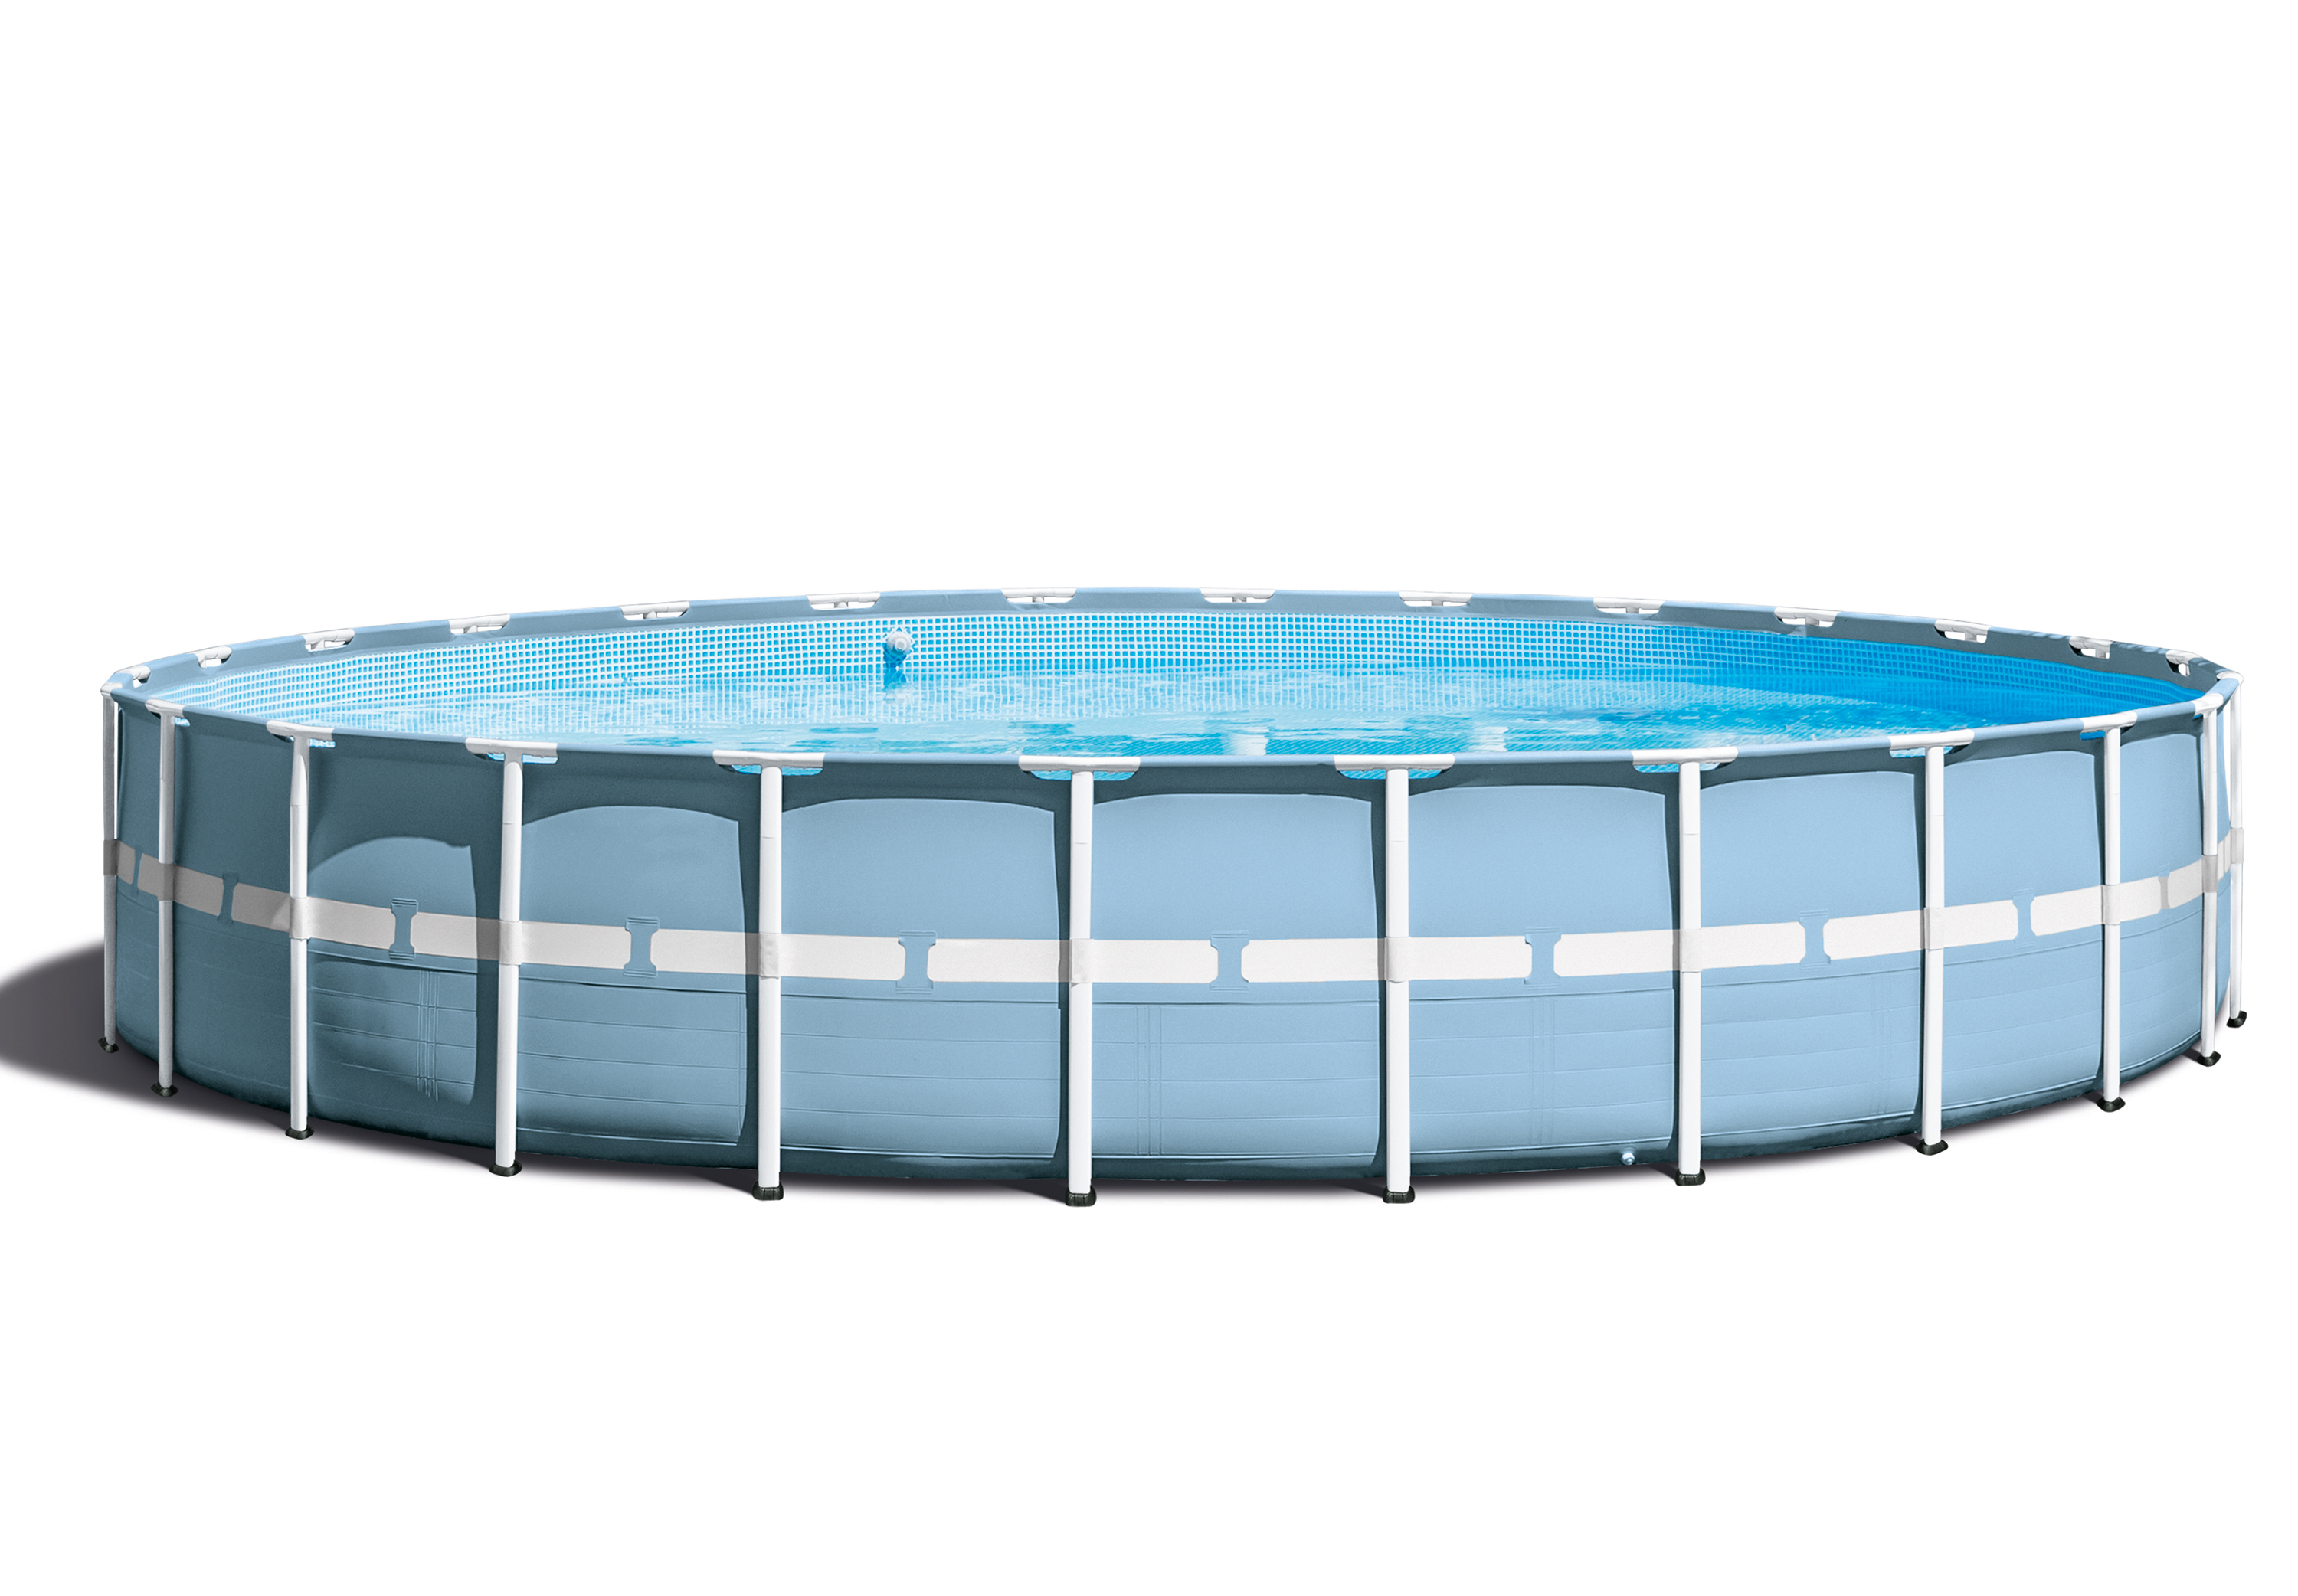 INTEX 24 ft x 52 in Prism Frame Round Pool Set